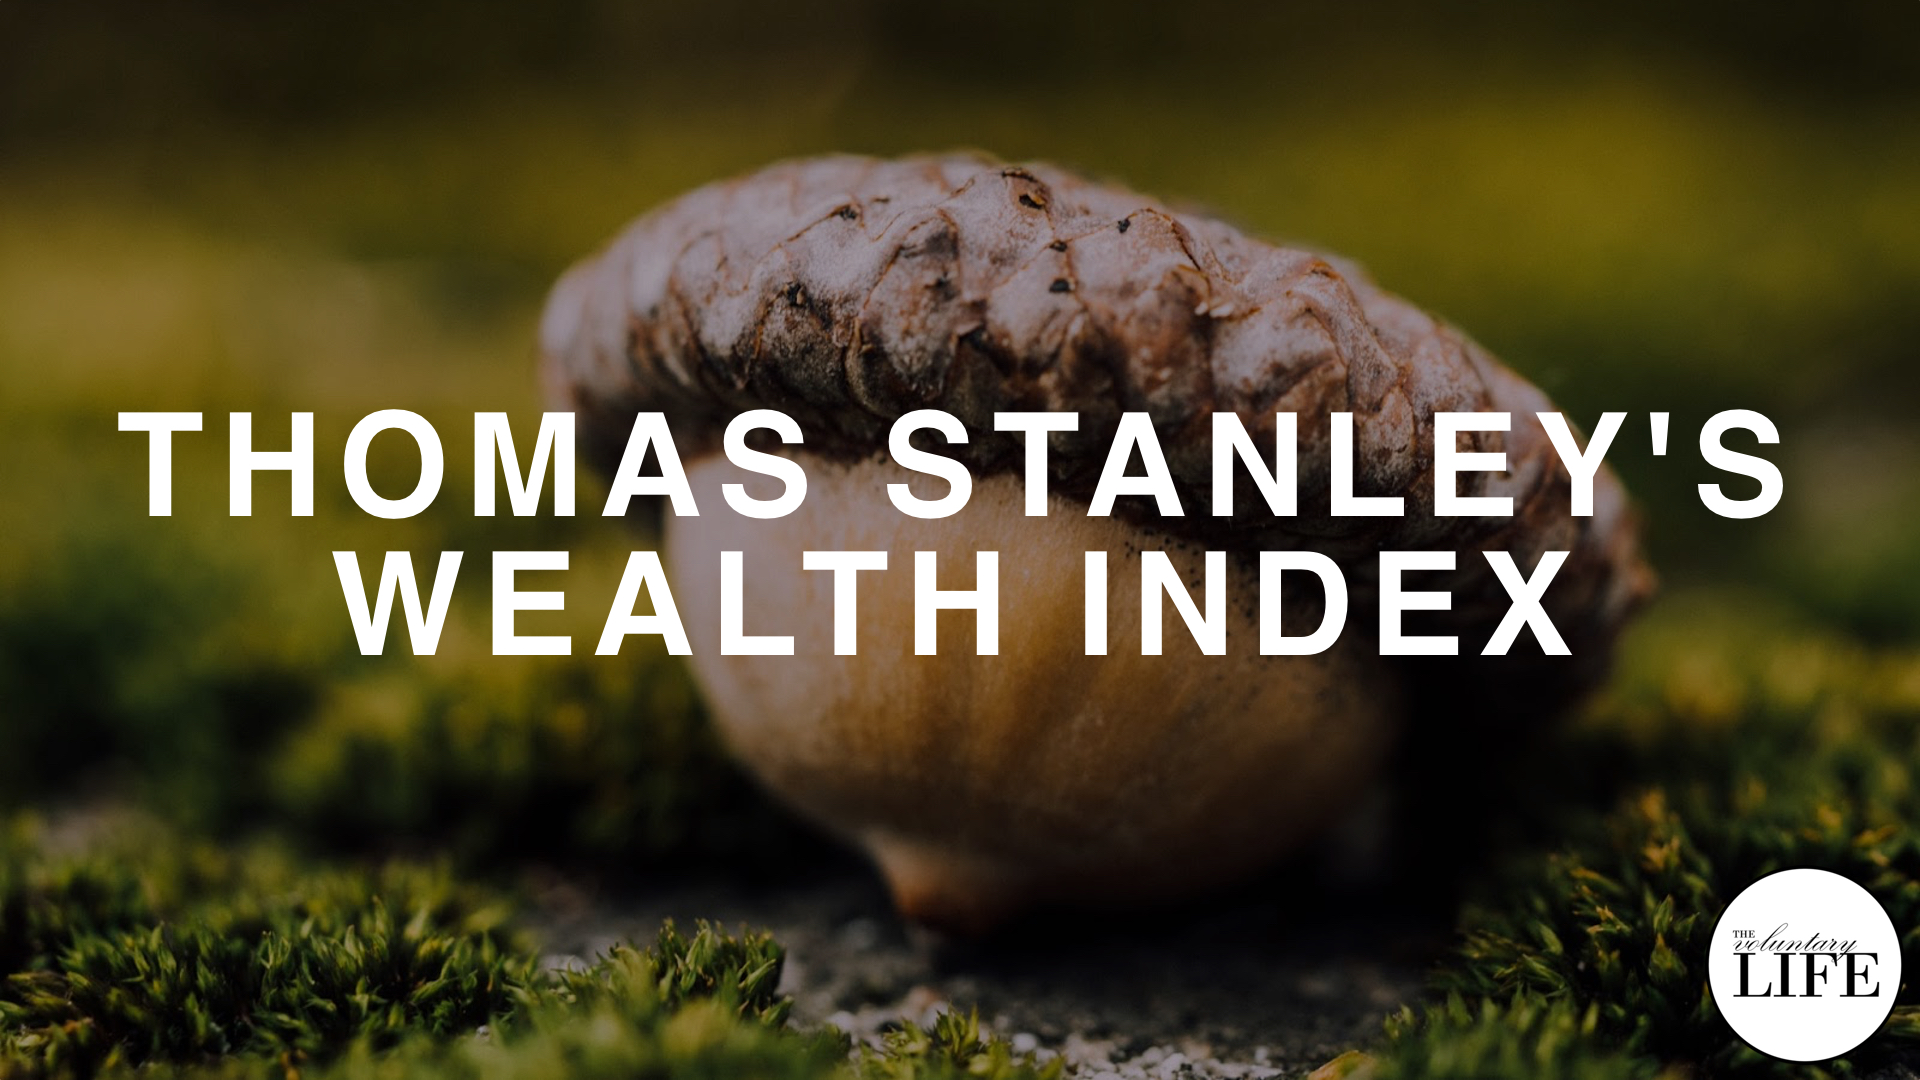 264 Thomas Stanley's Wealth Index